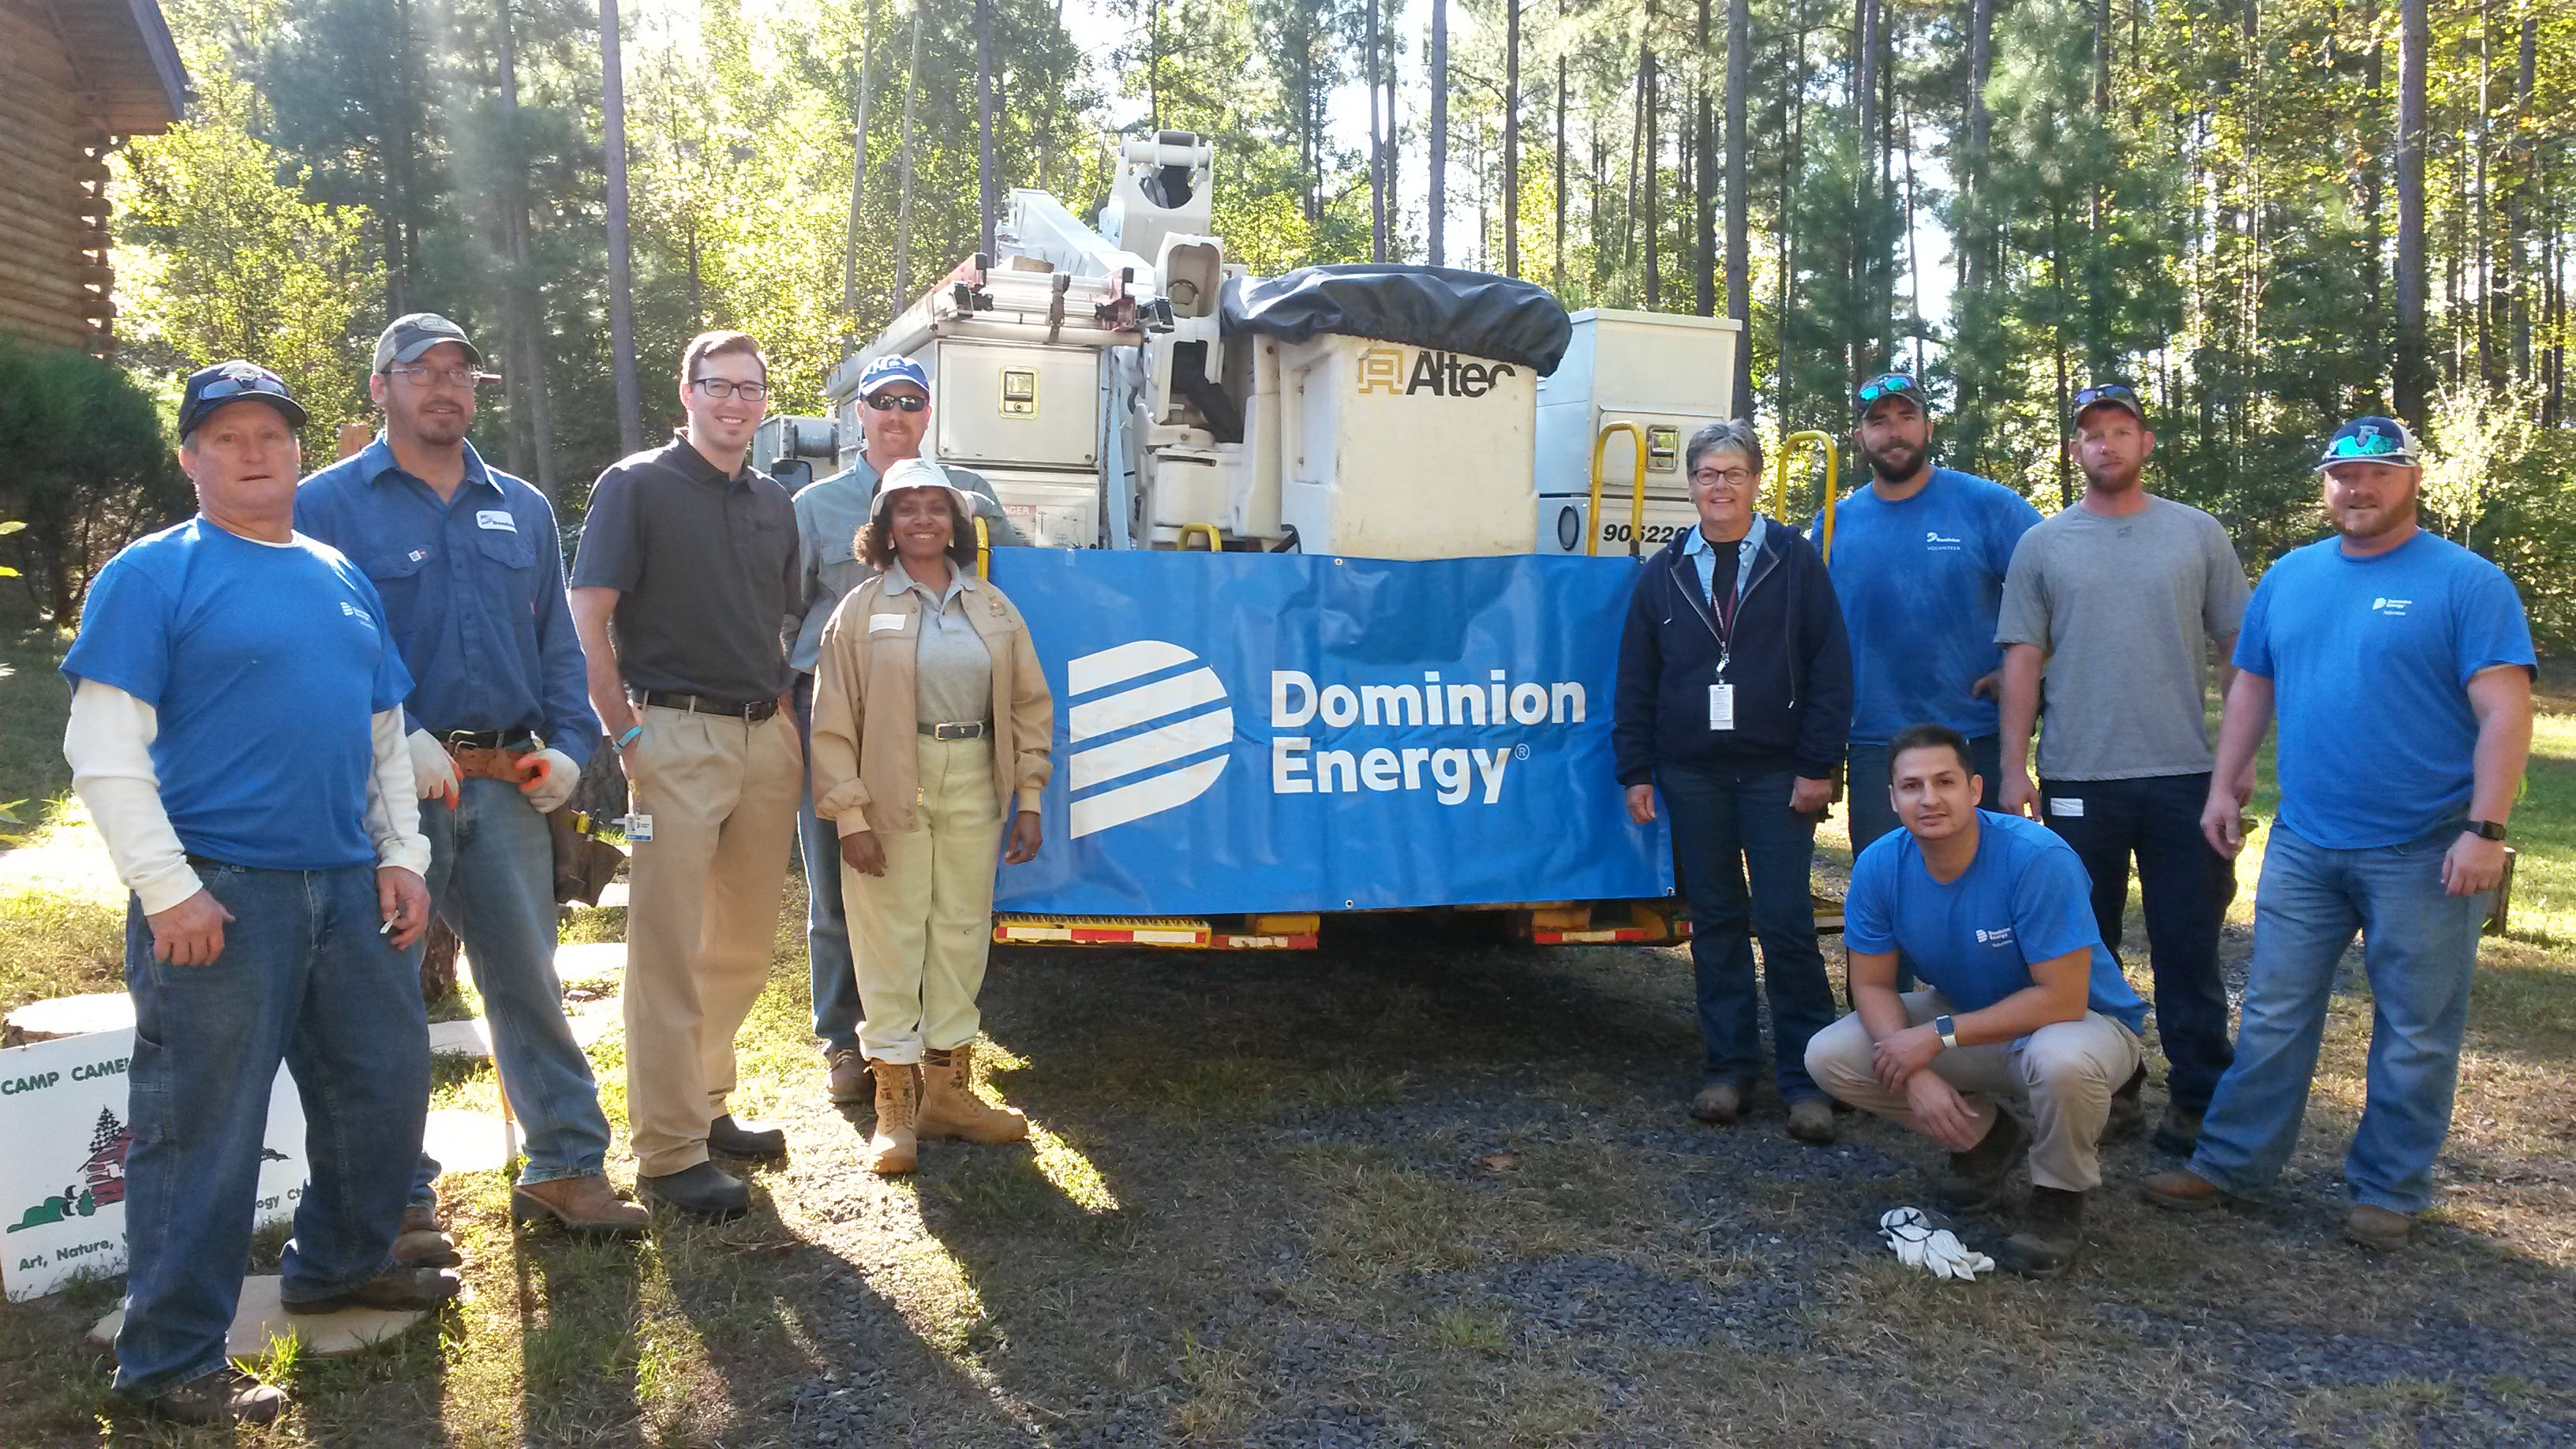 Dominion Energy Company provided a grant and employees to design, build and install three bridges across the Pine Forest Streams making the forest trails handicapped accessible for veterans and students.